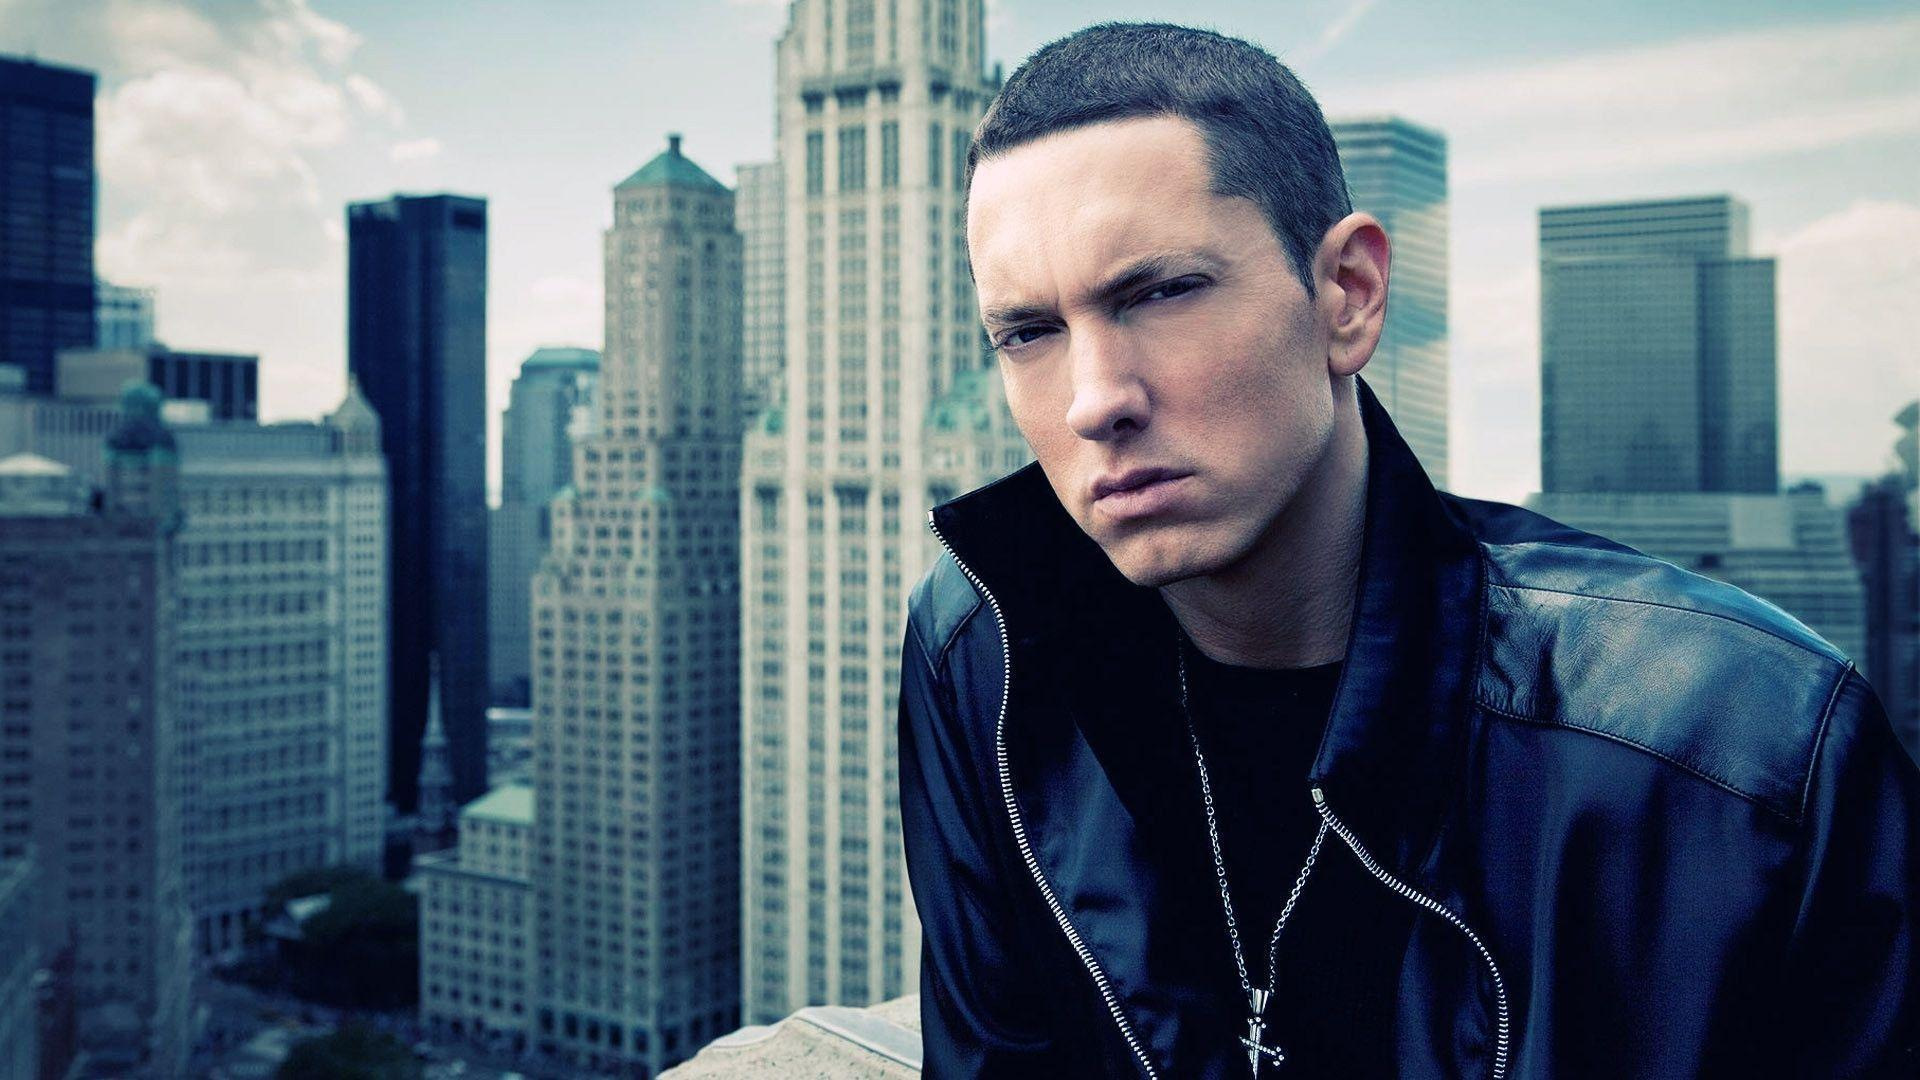 eminem wallpapers - photo #5